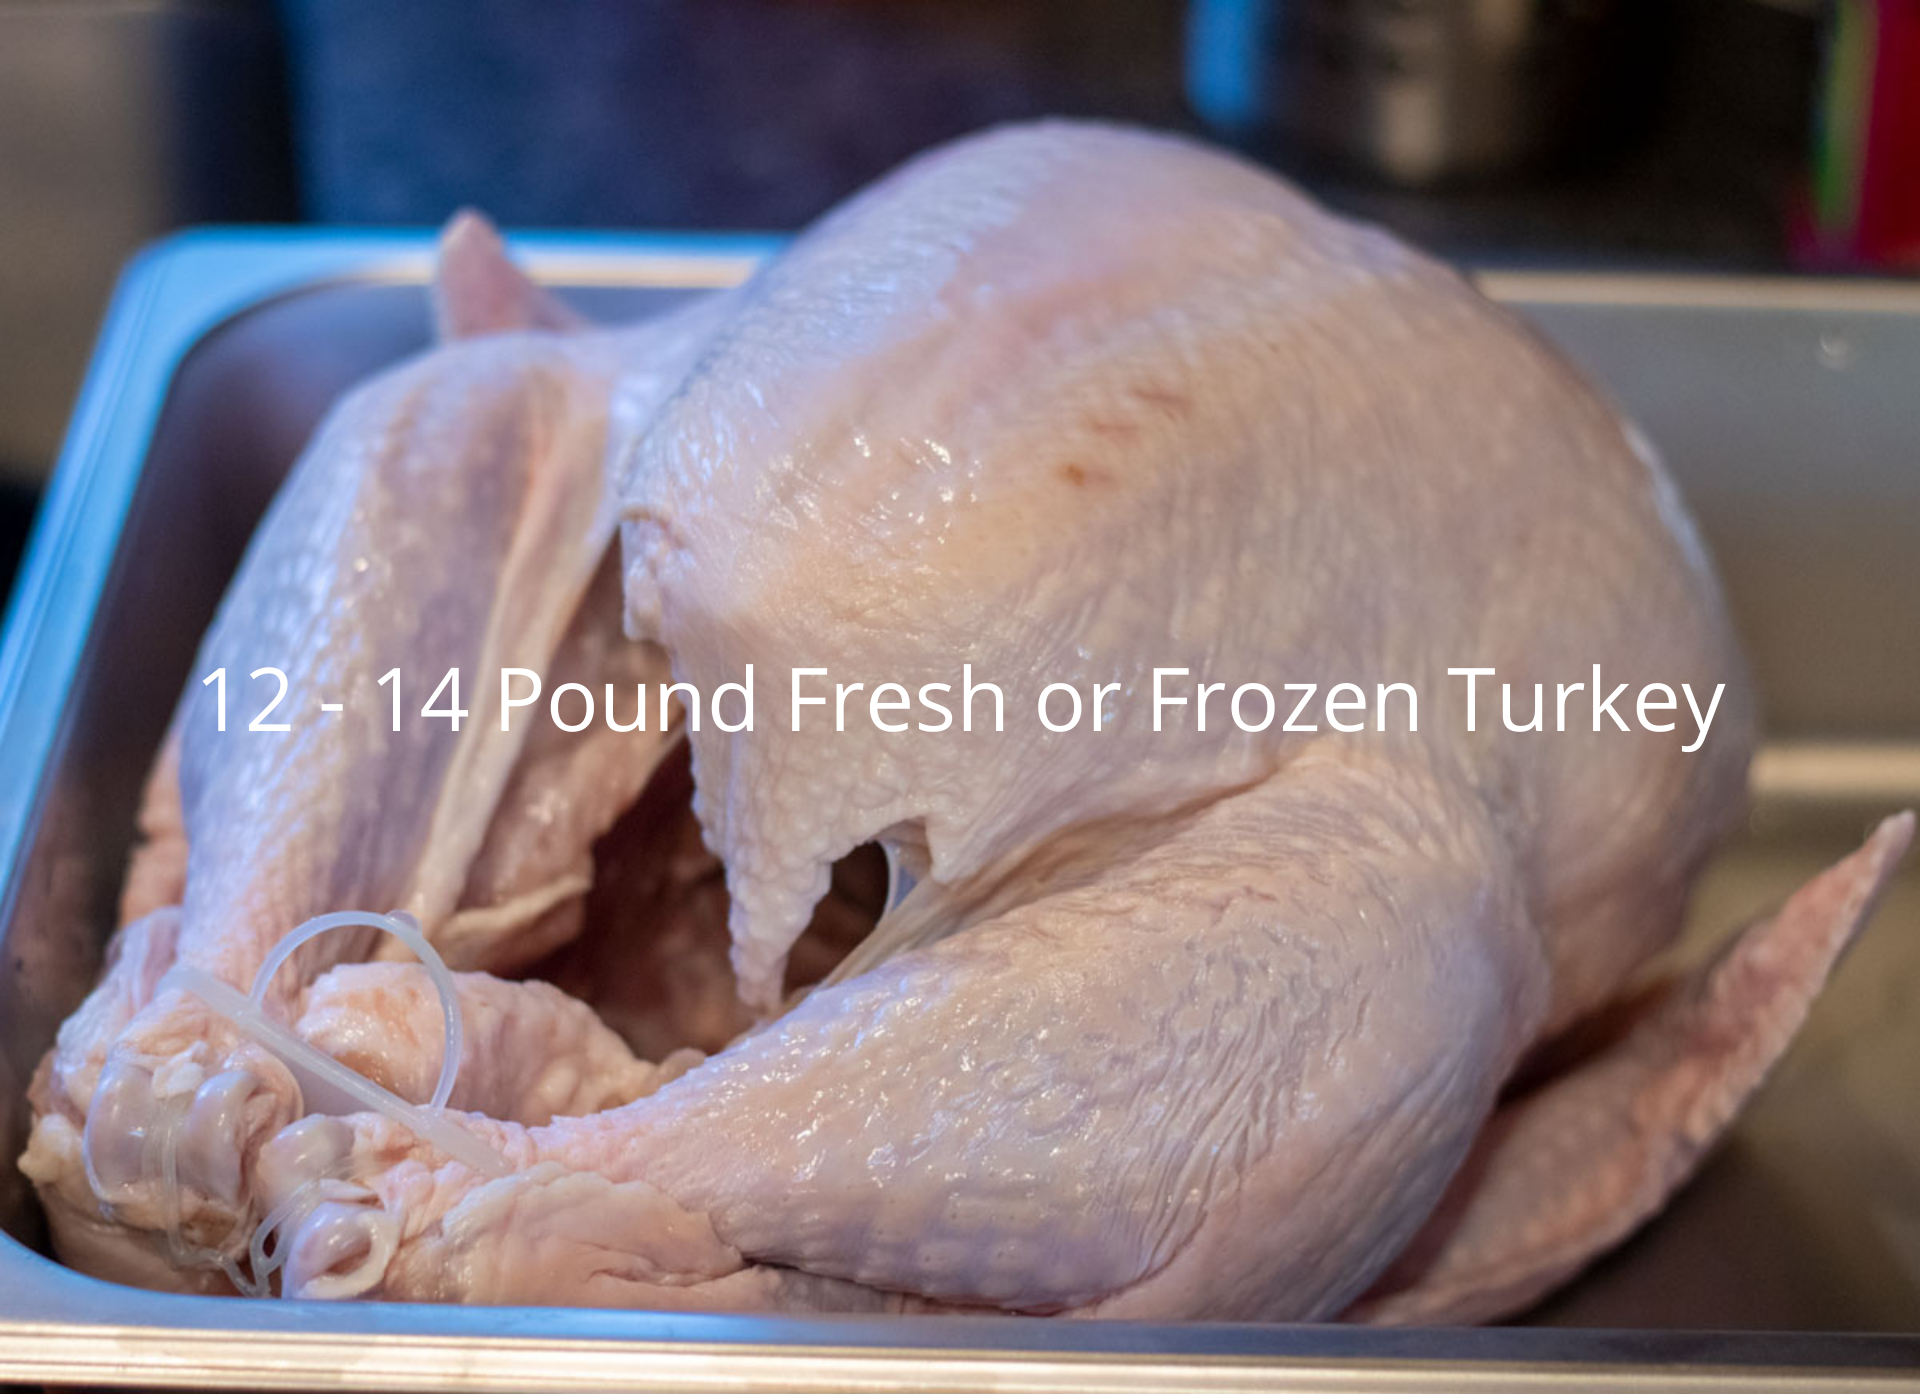 uncooked whole turkey in a roasting pan